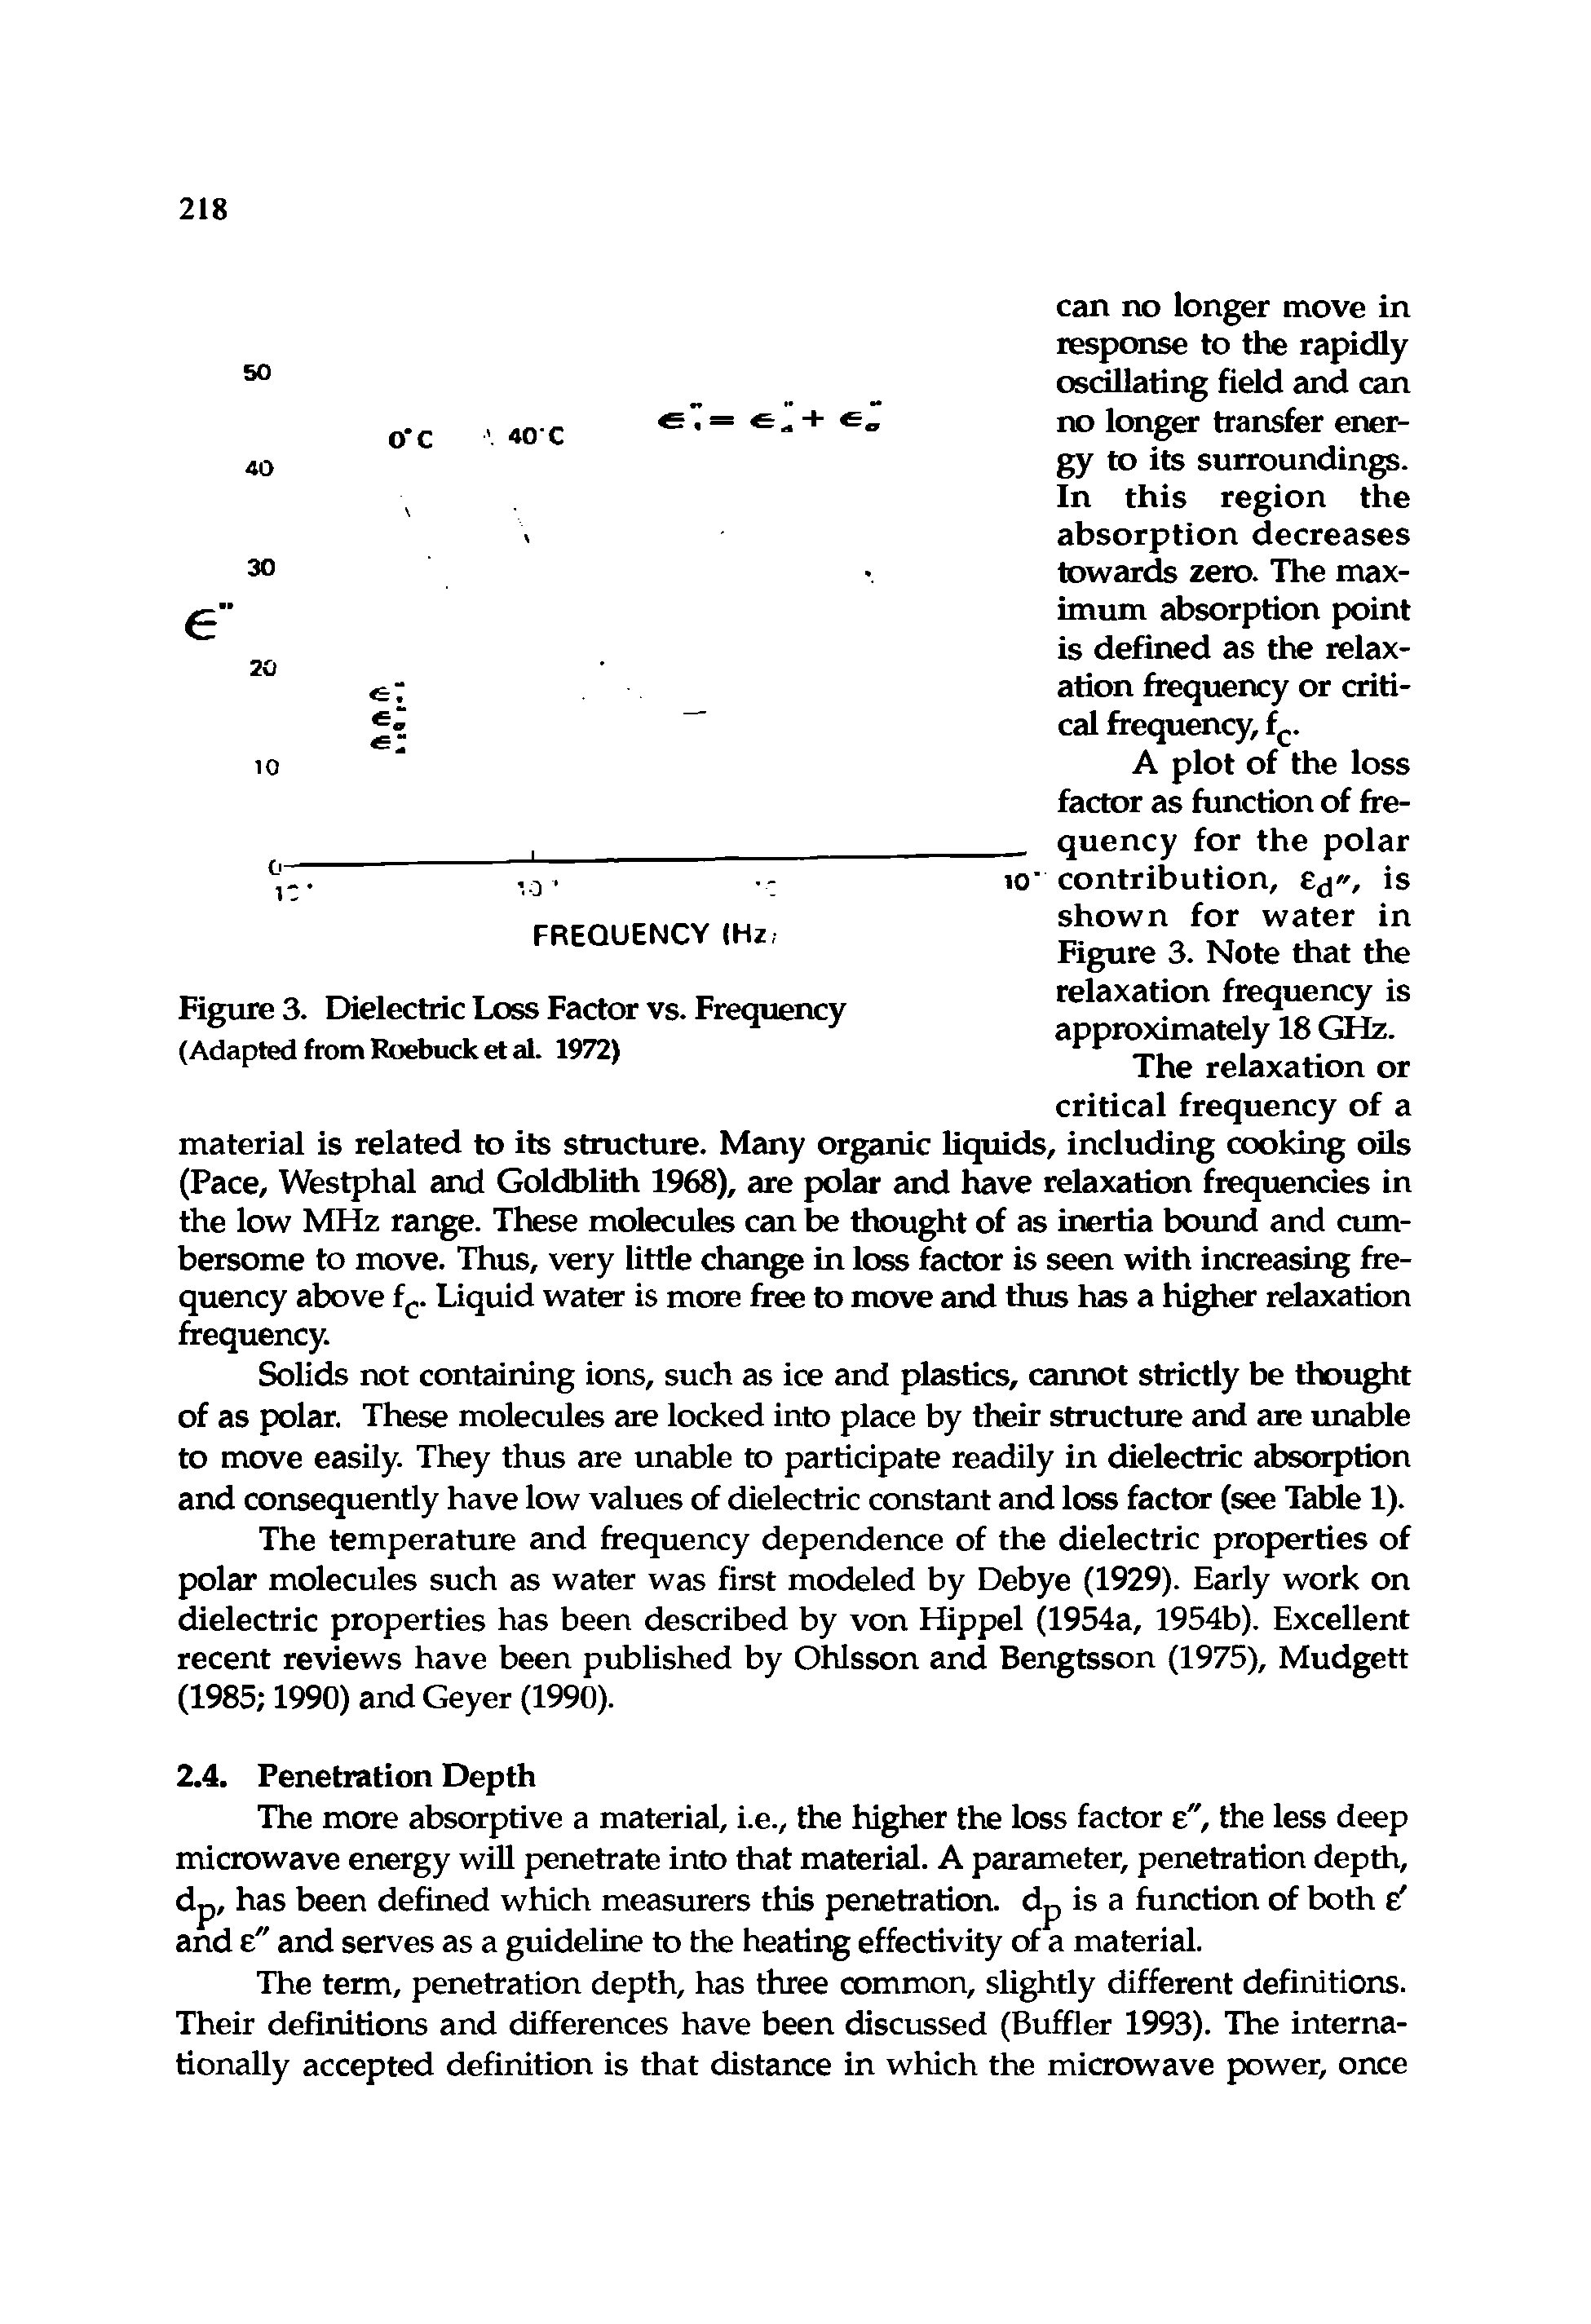 Figure 3. Dielectric Loss Factor vs. Frequency (Adapted from Roebuck et al. 1972)